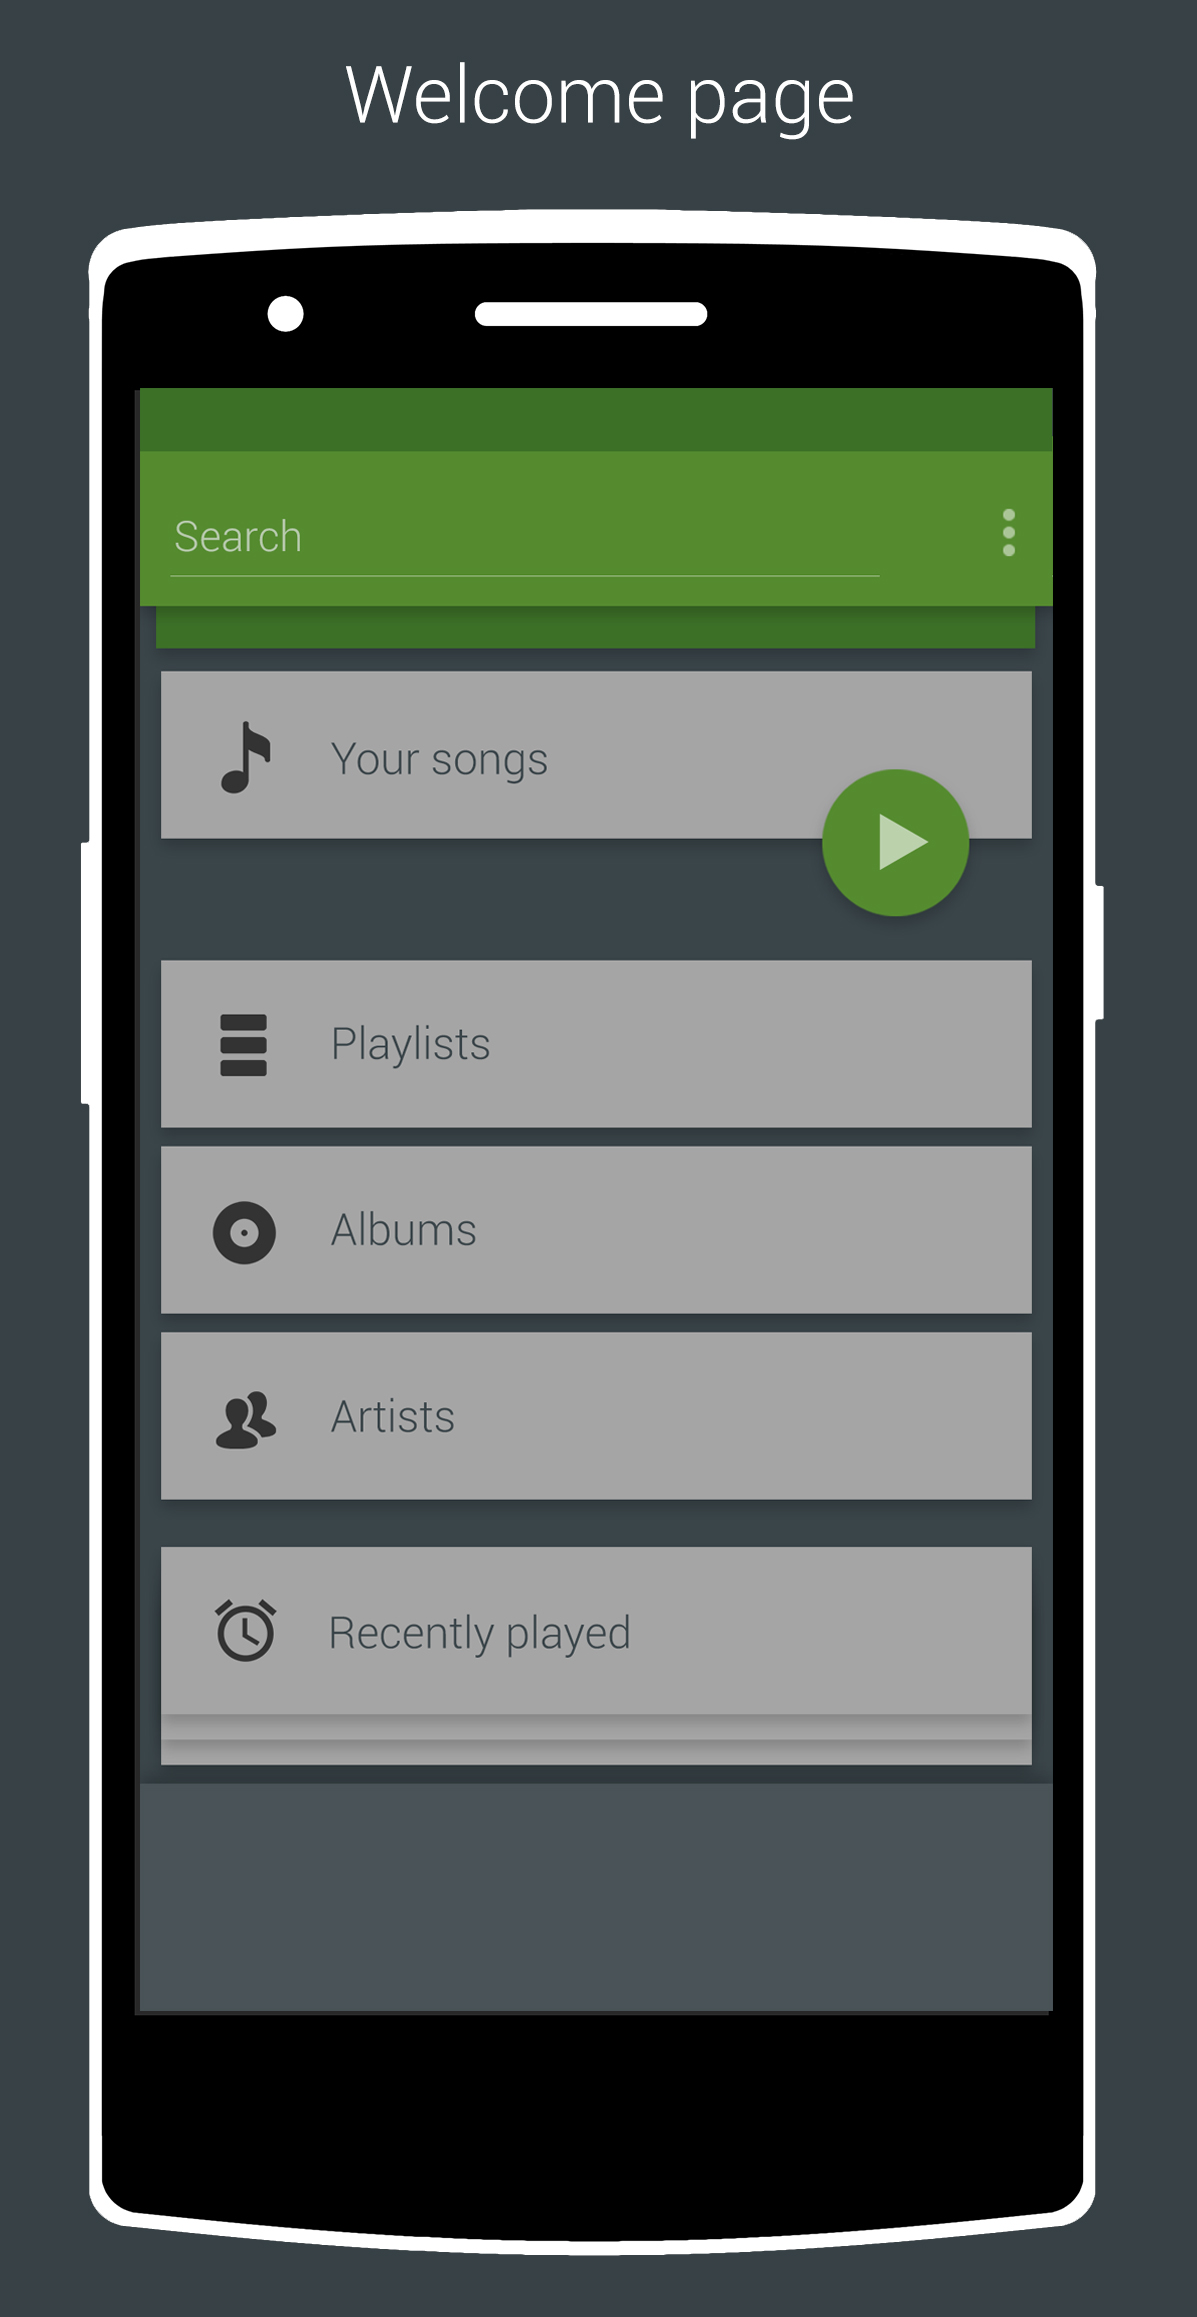 Redesign The Android App To Fit The Material Desig